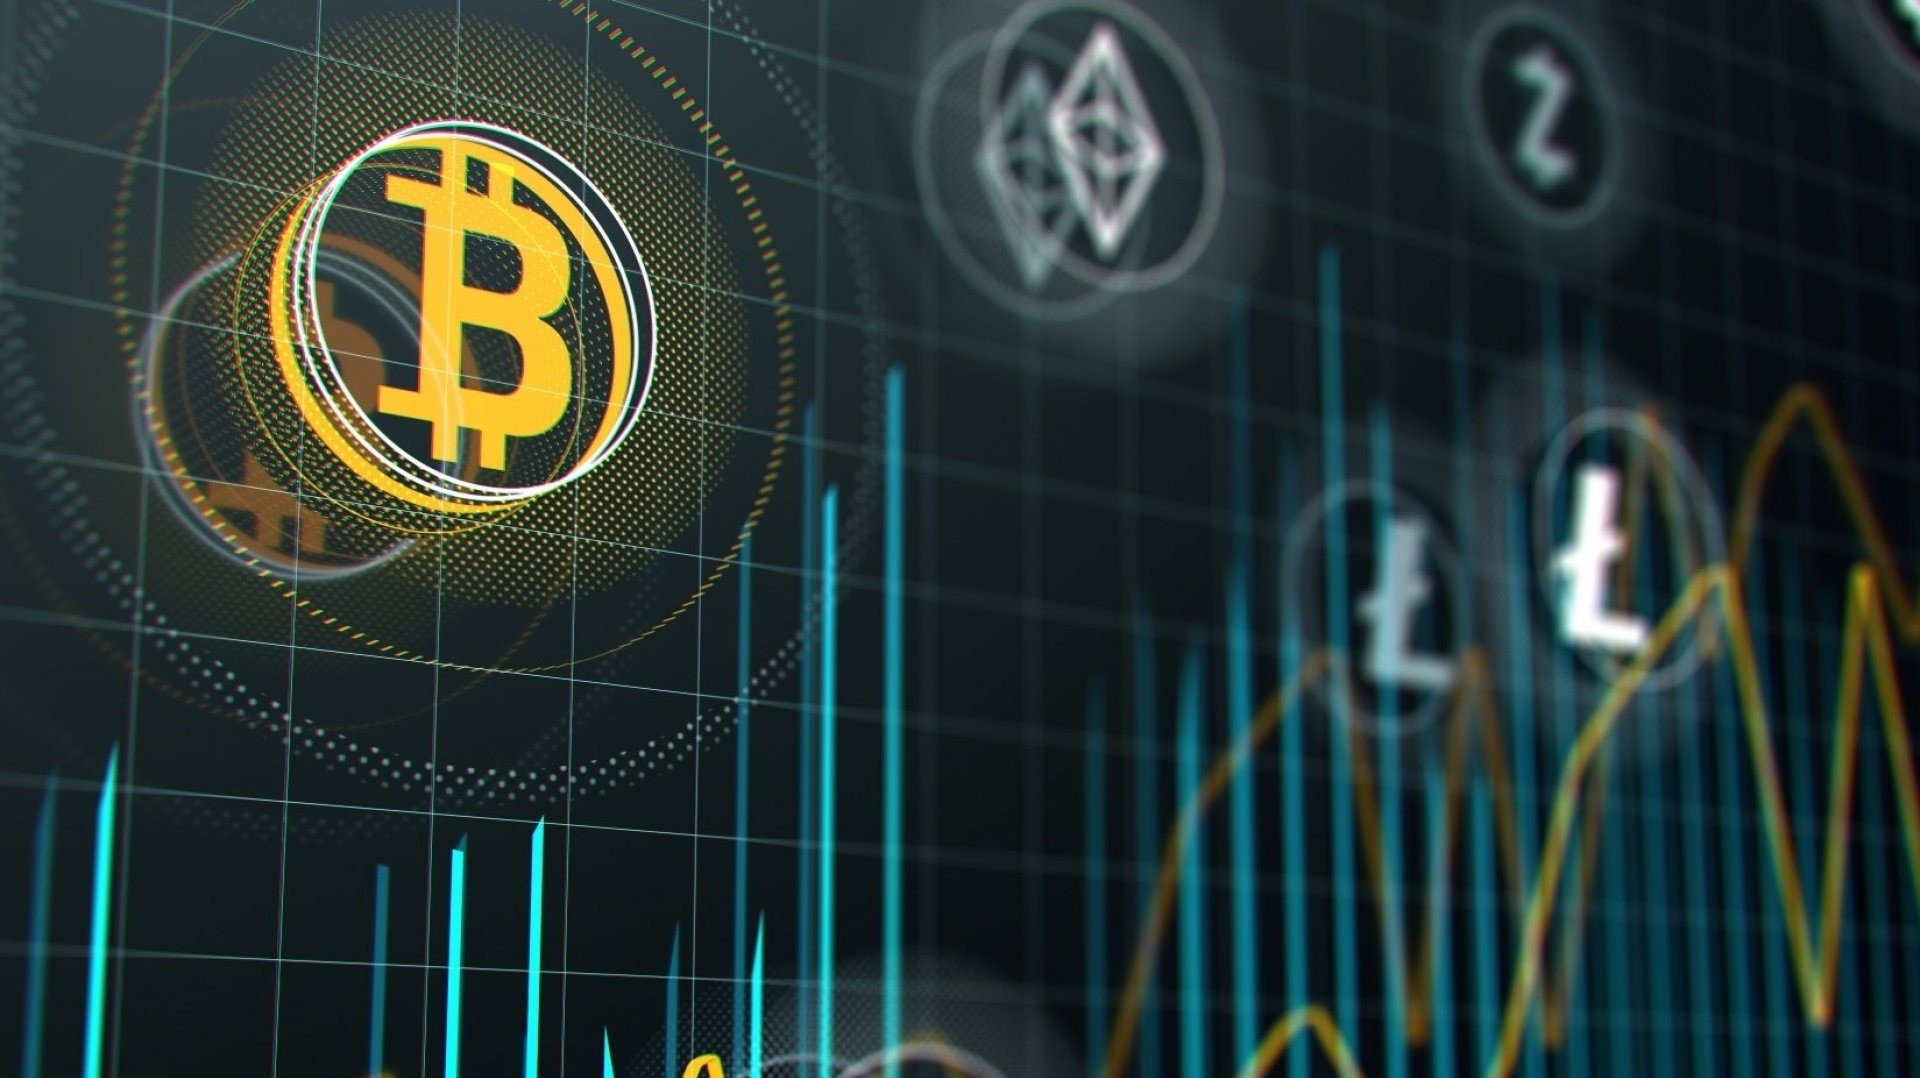 When Cryptocurrencies Become Inevitable and Obvious